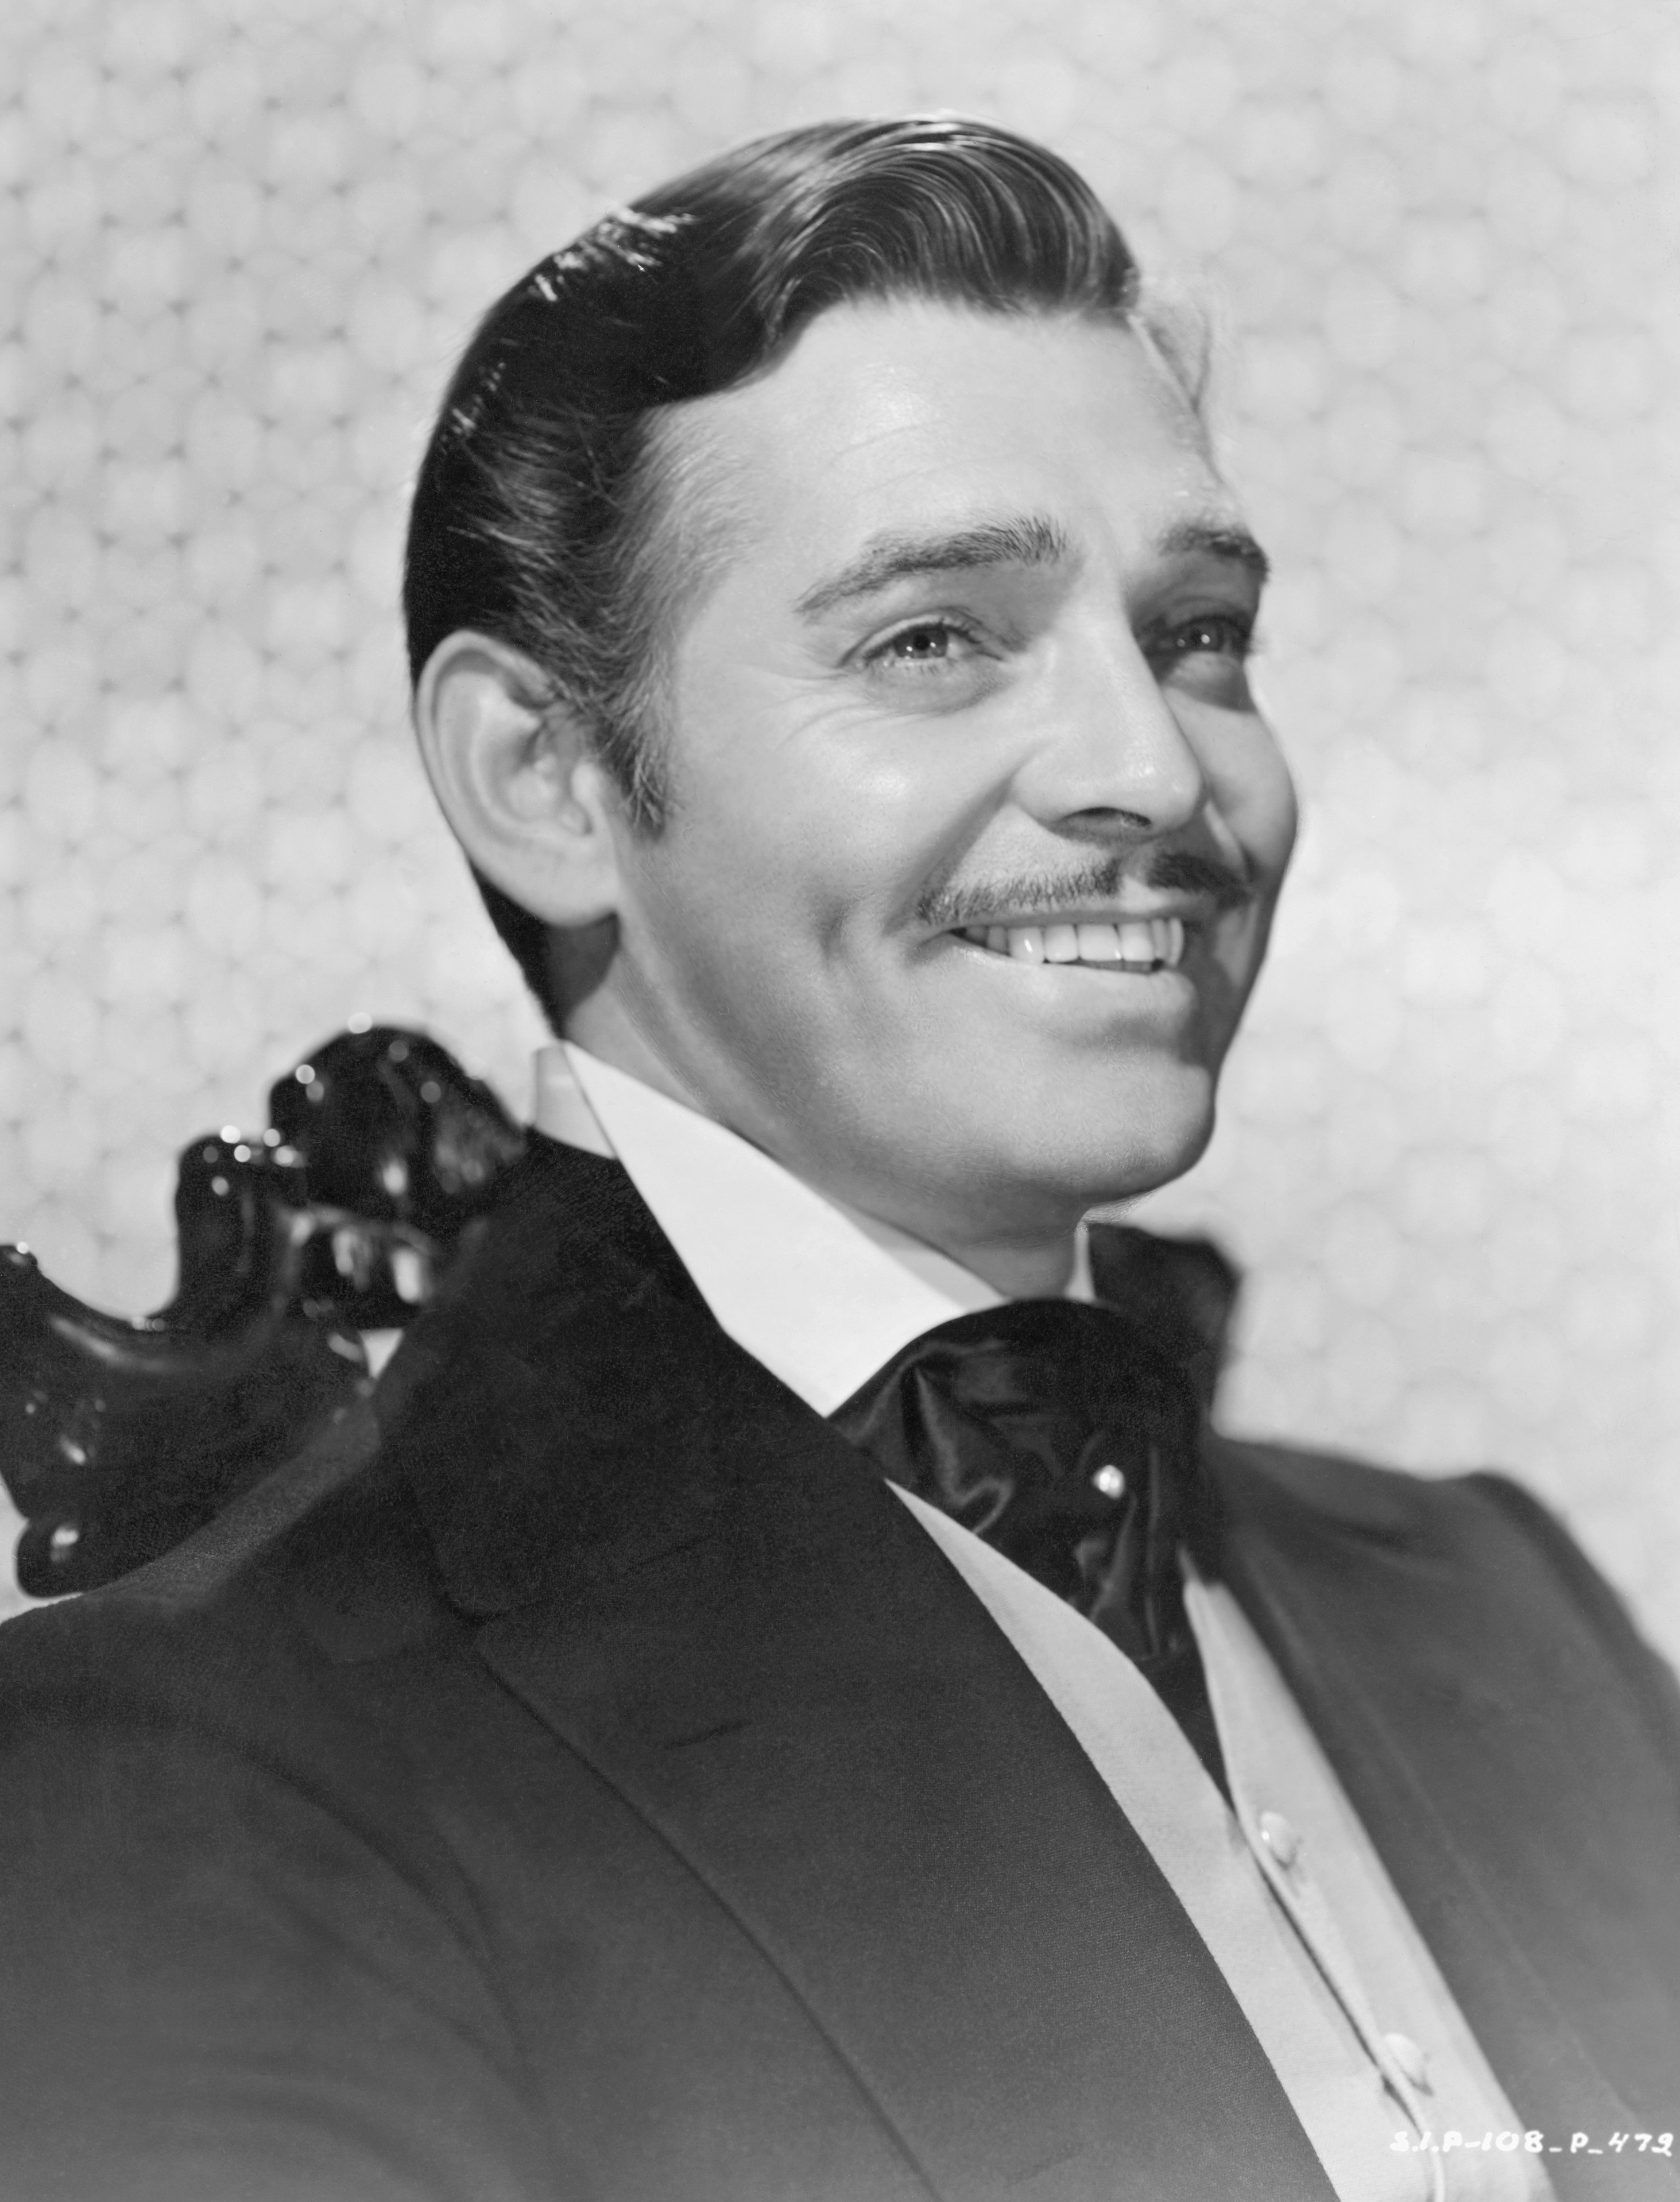 American actor Clark Gable (1901 - 1960) as he appears in 'Gone With The Wind', directed by Victor Fleming, 1939. | Source: Getty Images